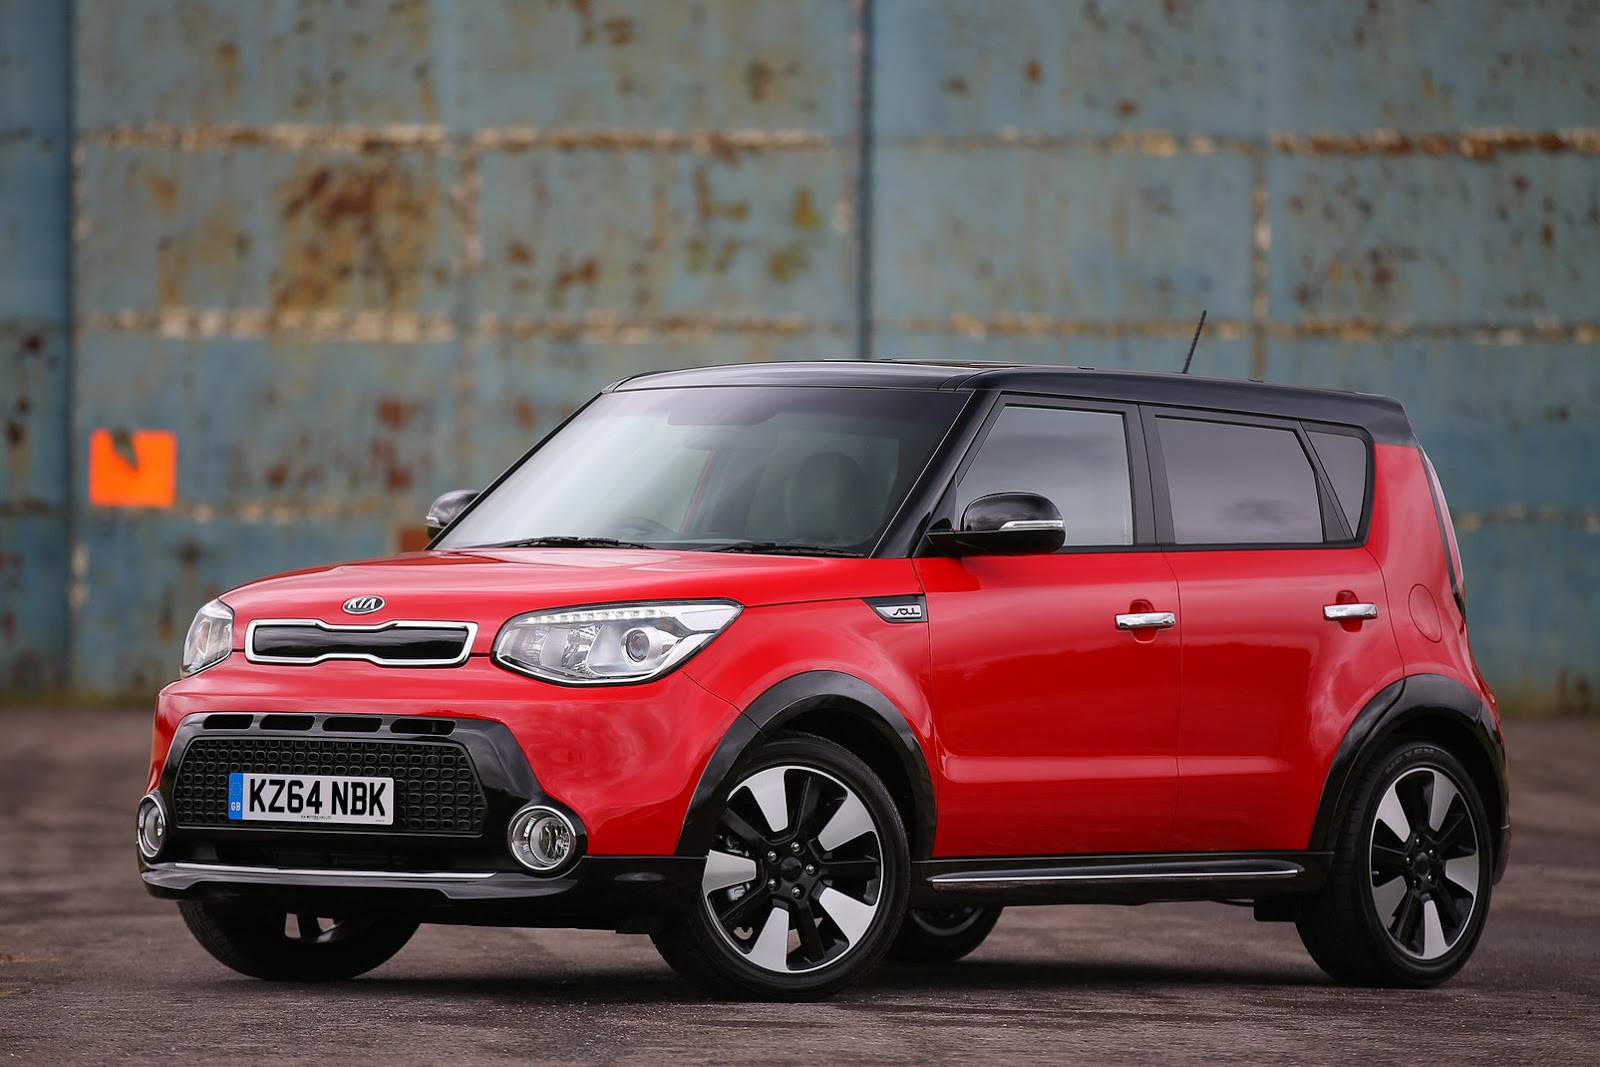 kia mixxs and maxxs its uk soul lineup carscoops. Black Bedroom Furniture Sets. Home Design Ideas